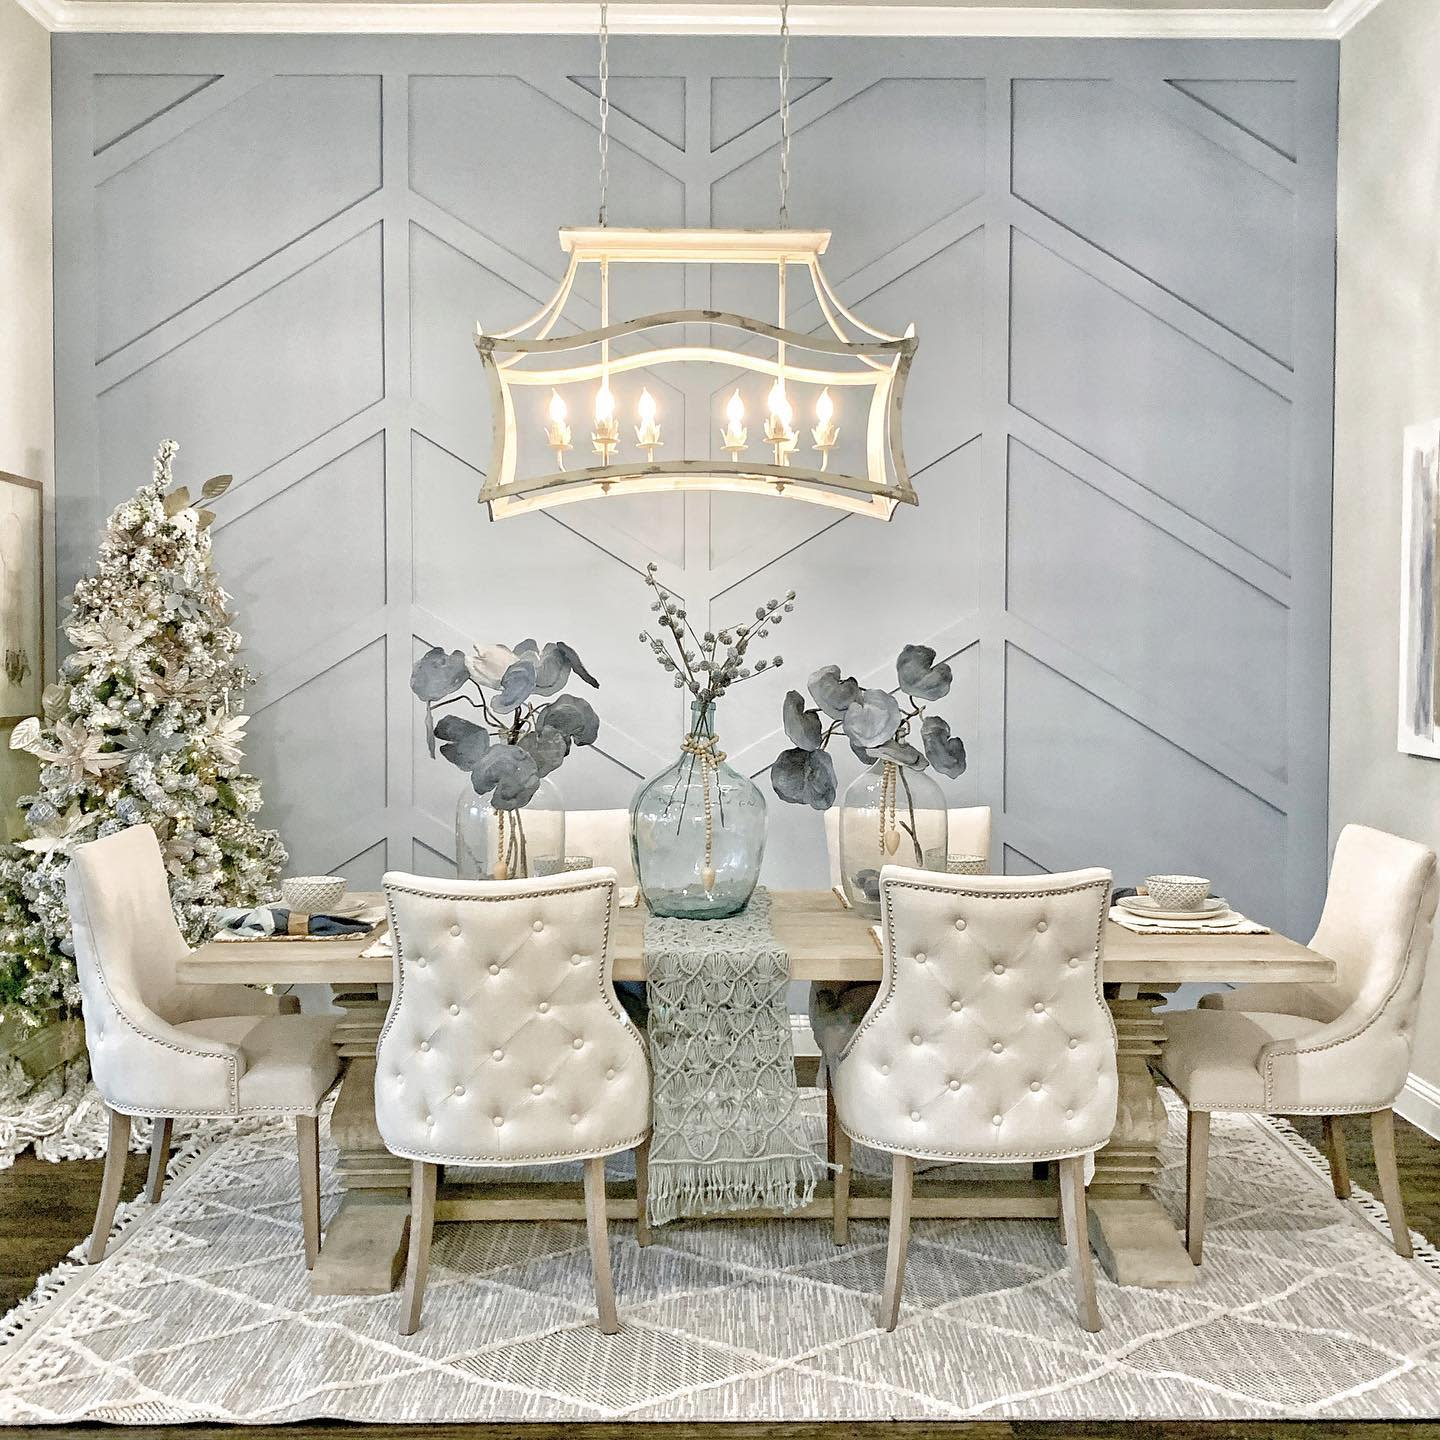 Panelling Dining Room Wall Decor Ideas -thefunkgypsy